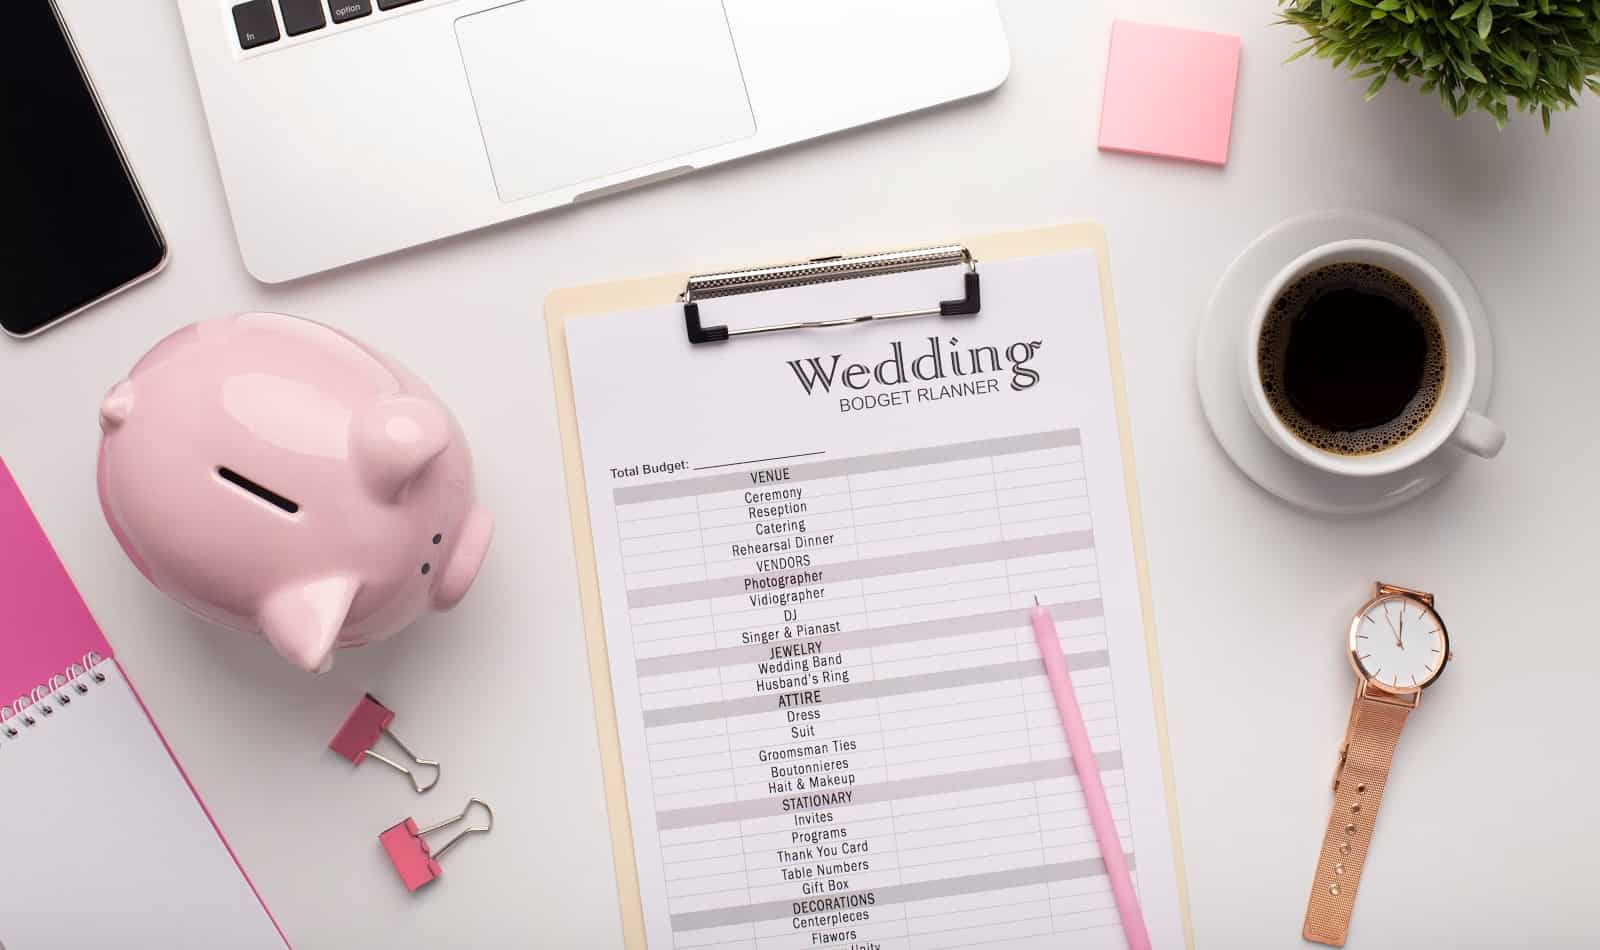 Wedding budget planner for keeping track of finances